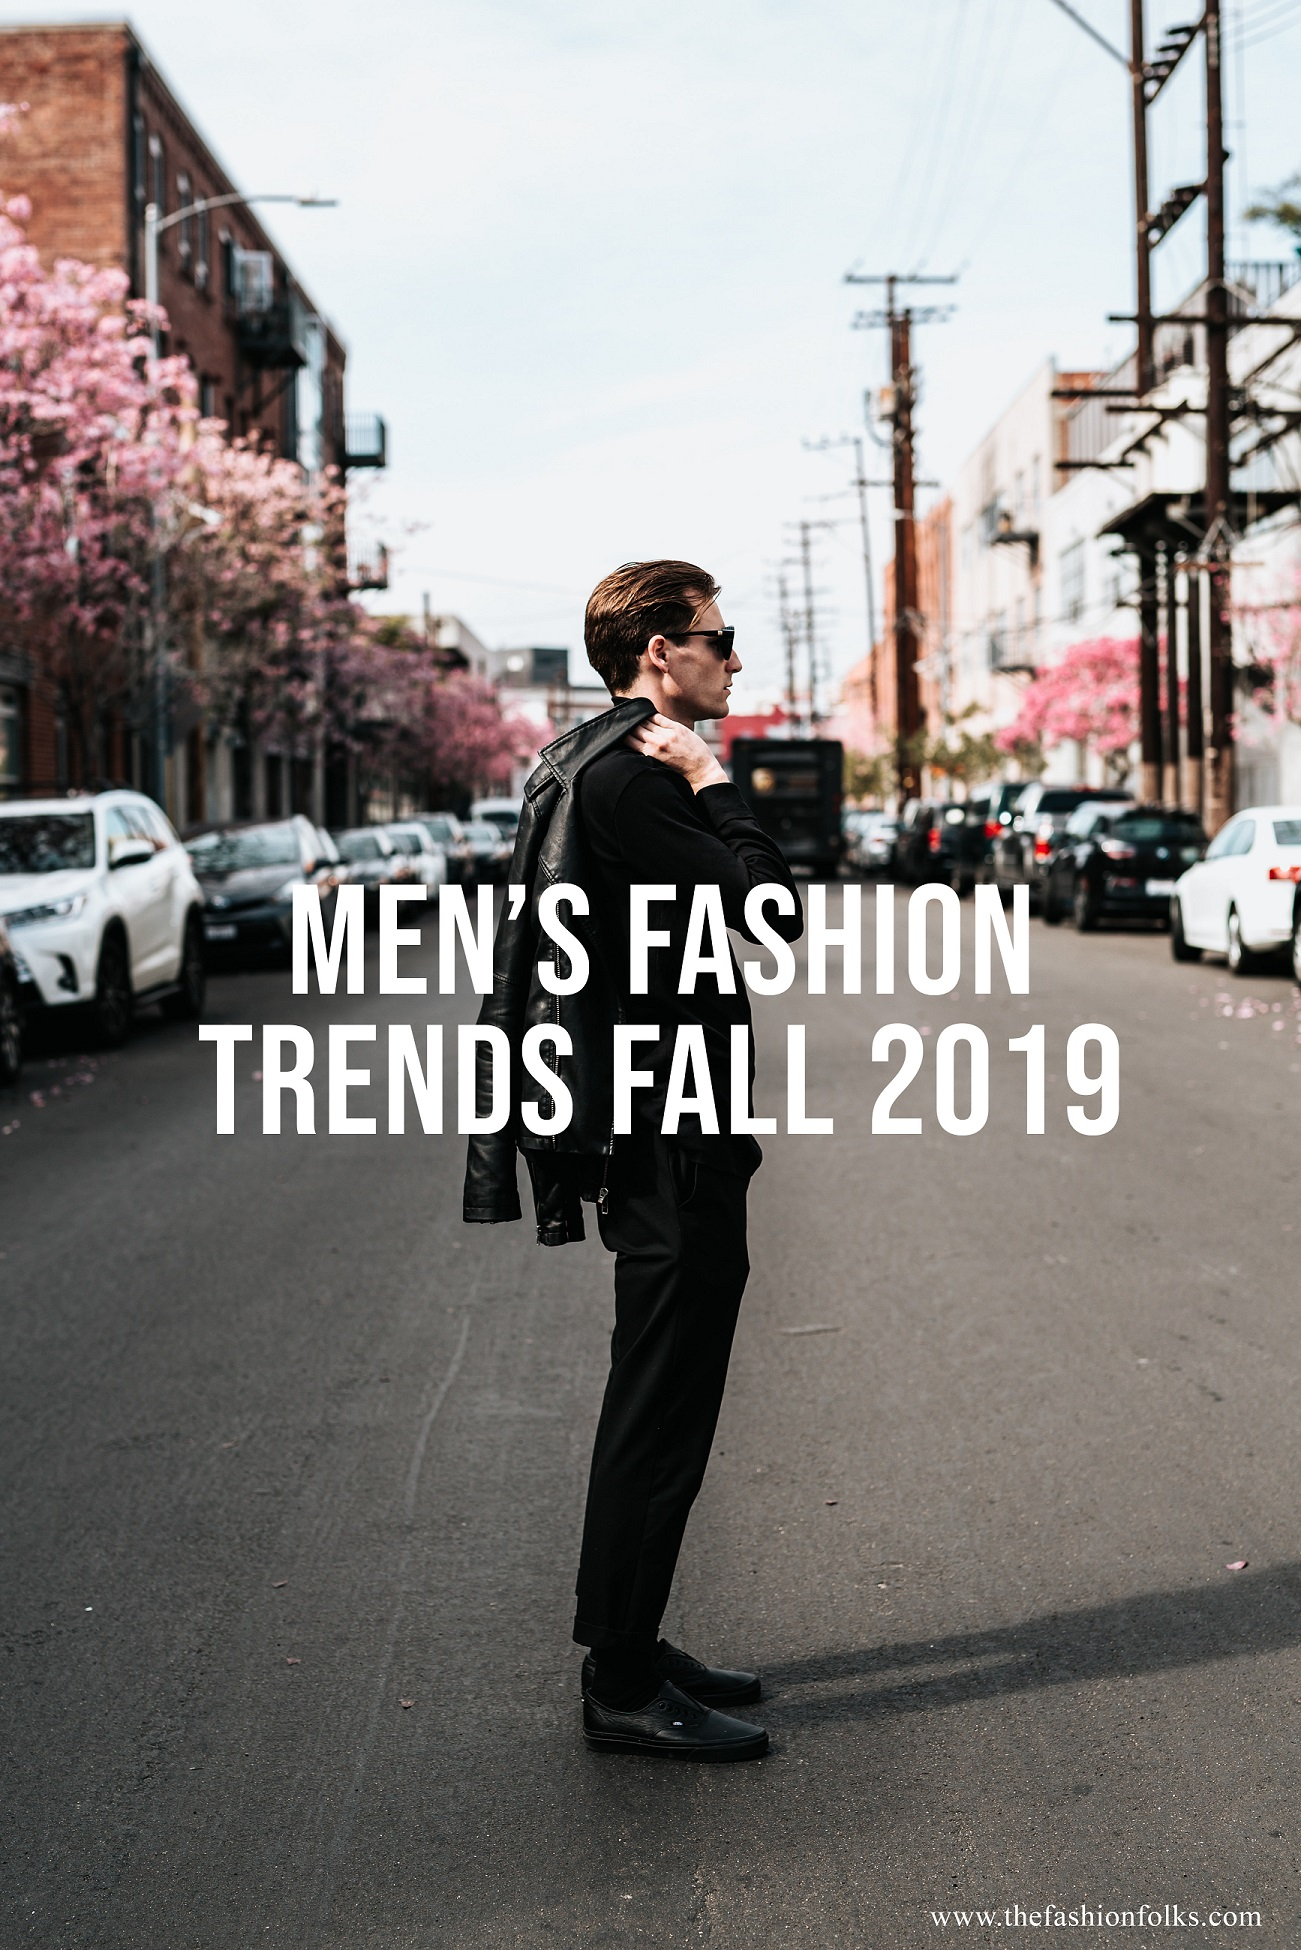 Men's Fashion Trends Fall 2019